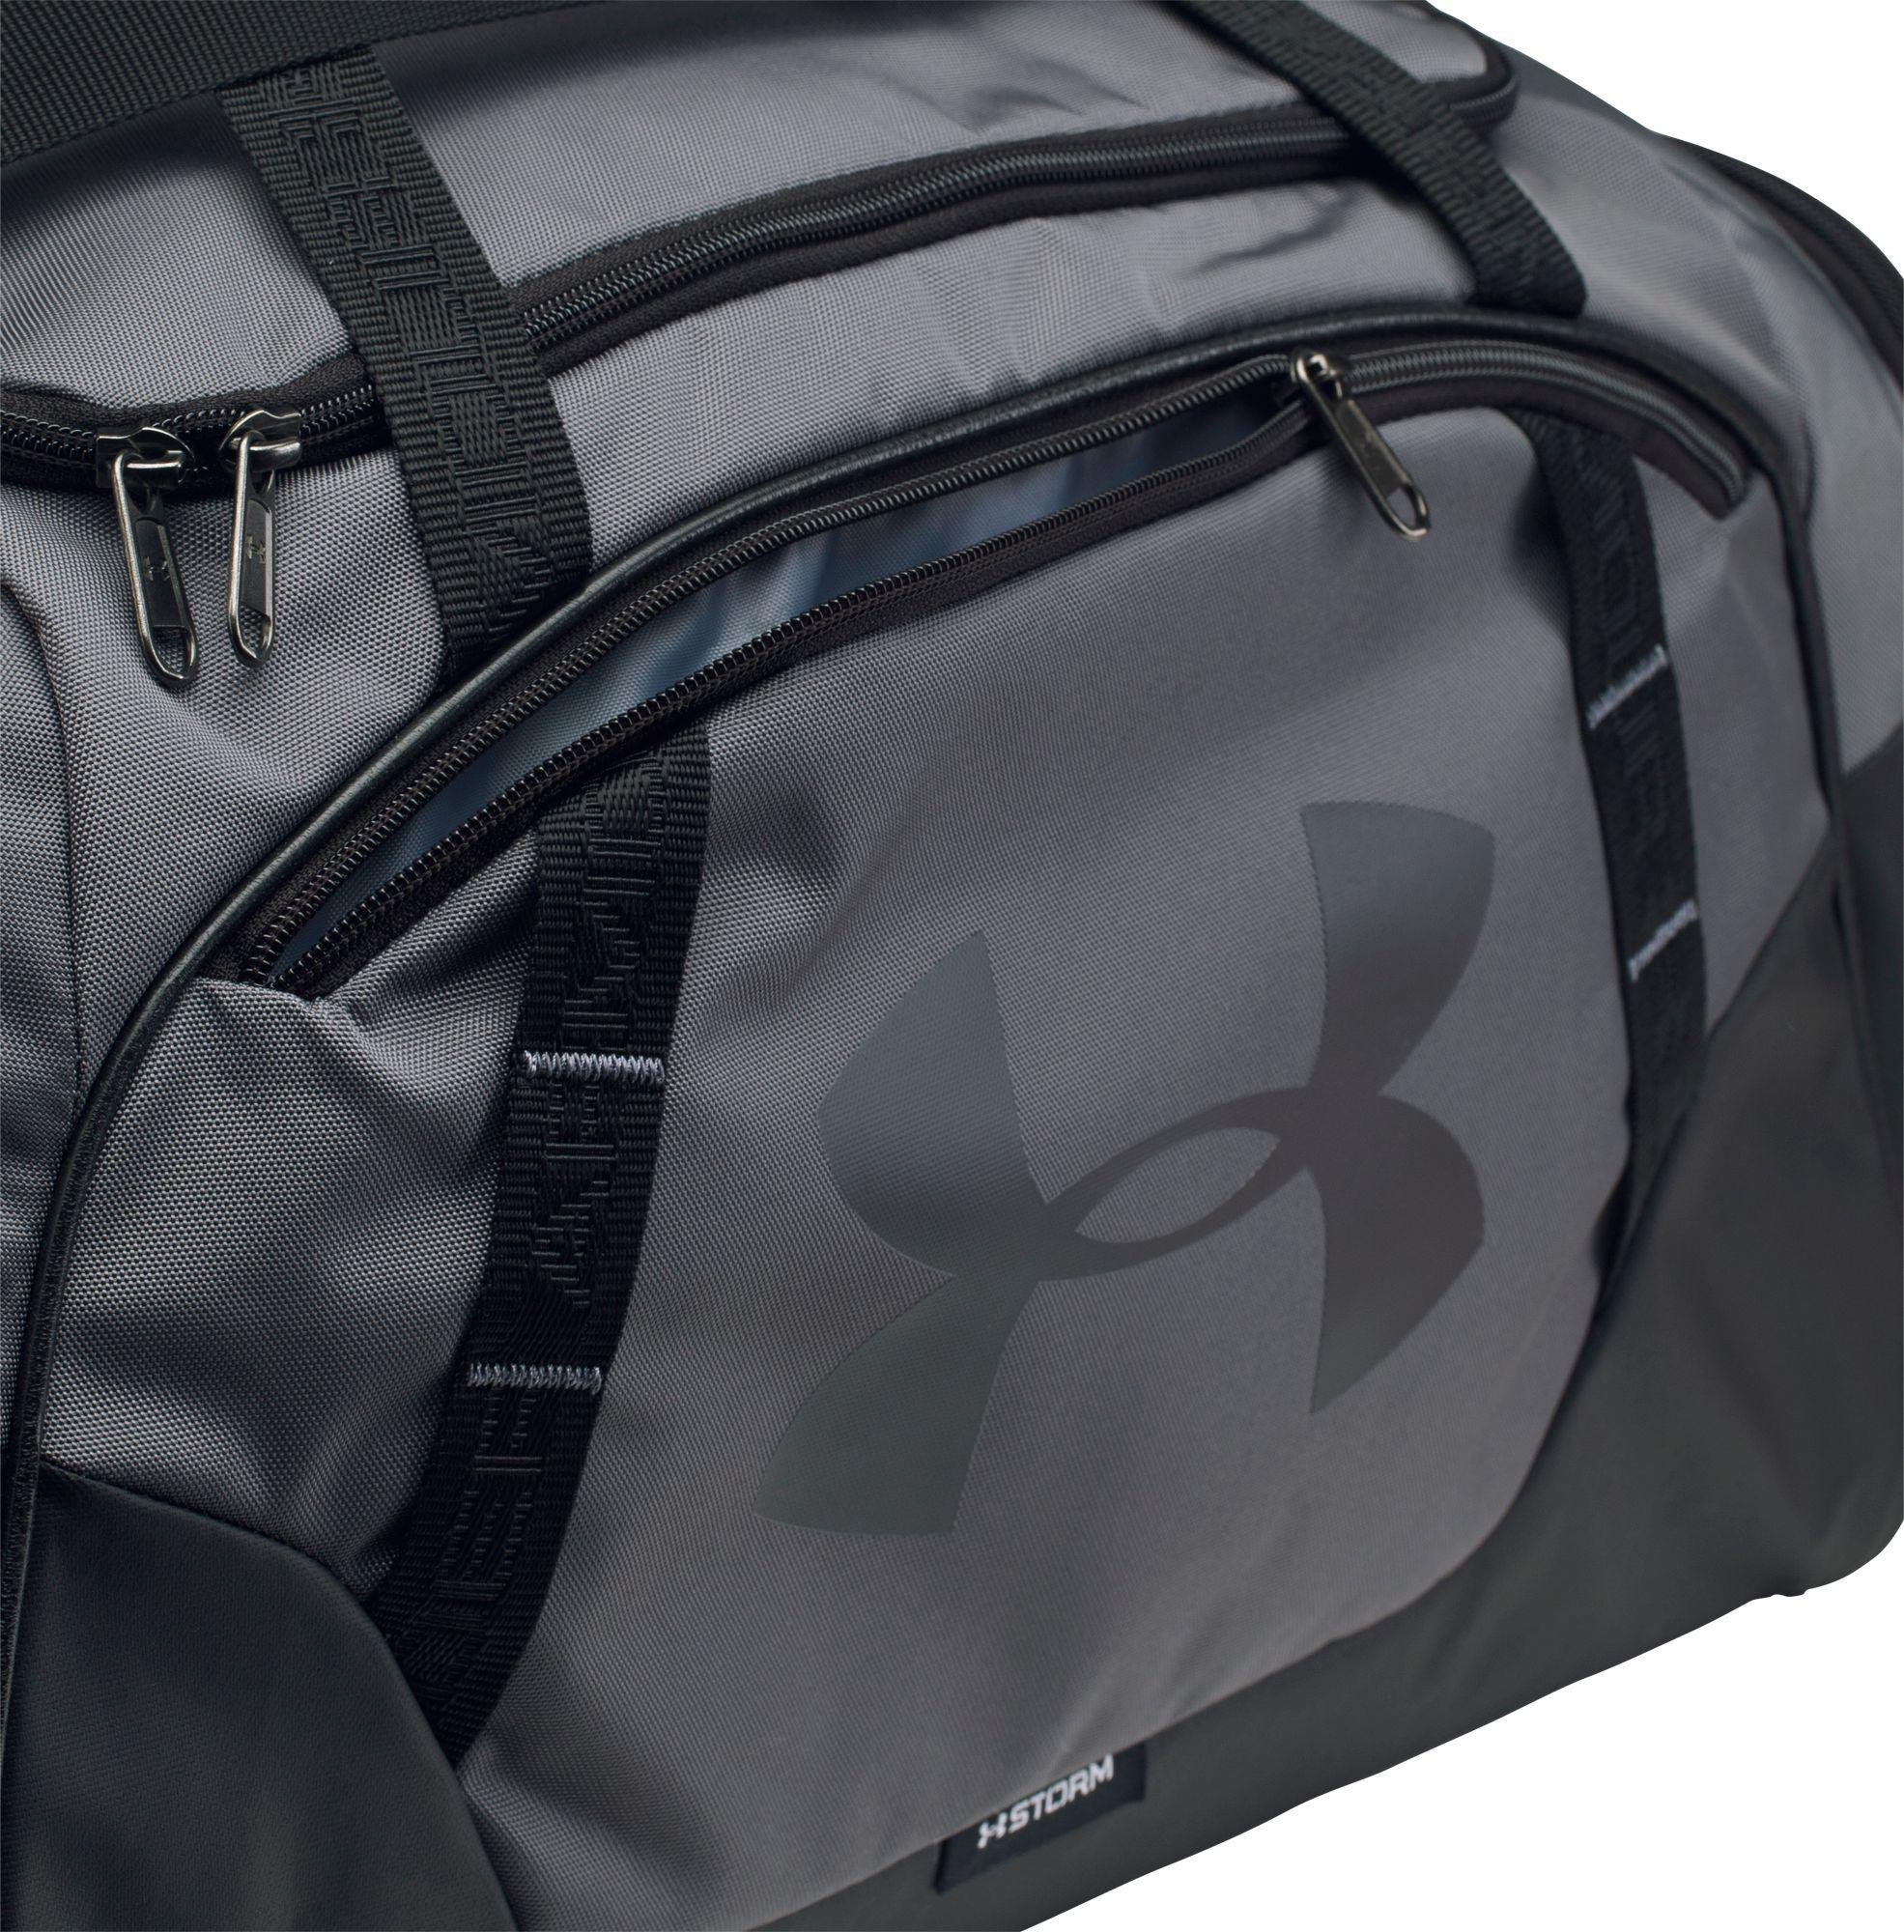 379389b90 Under Armour Undeniable 3.0 Small Duffle Bag in Black for Men - Save 41% -  Lyst